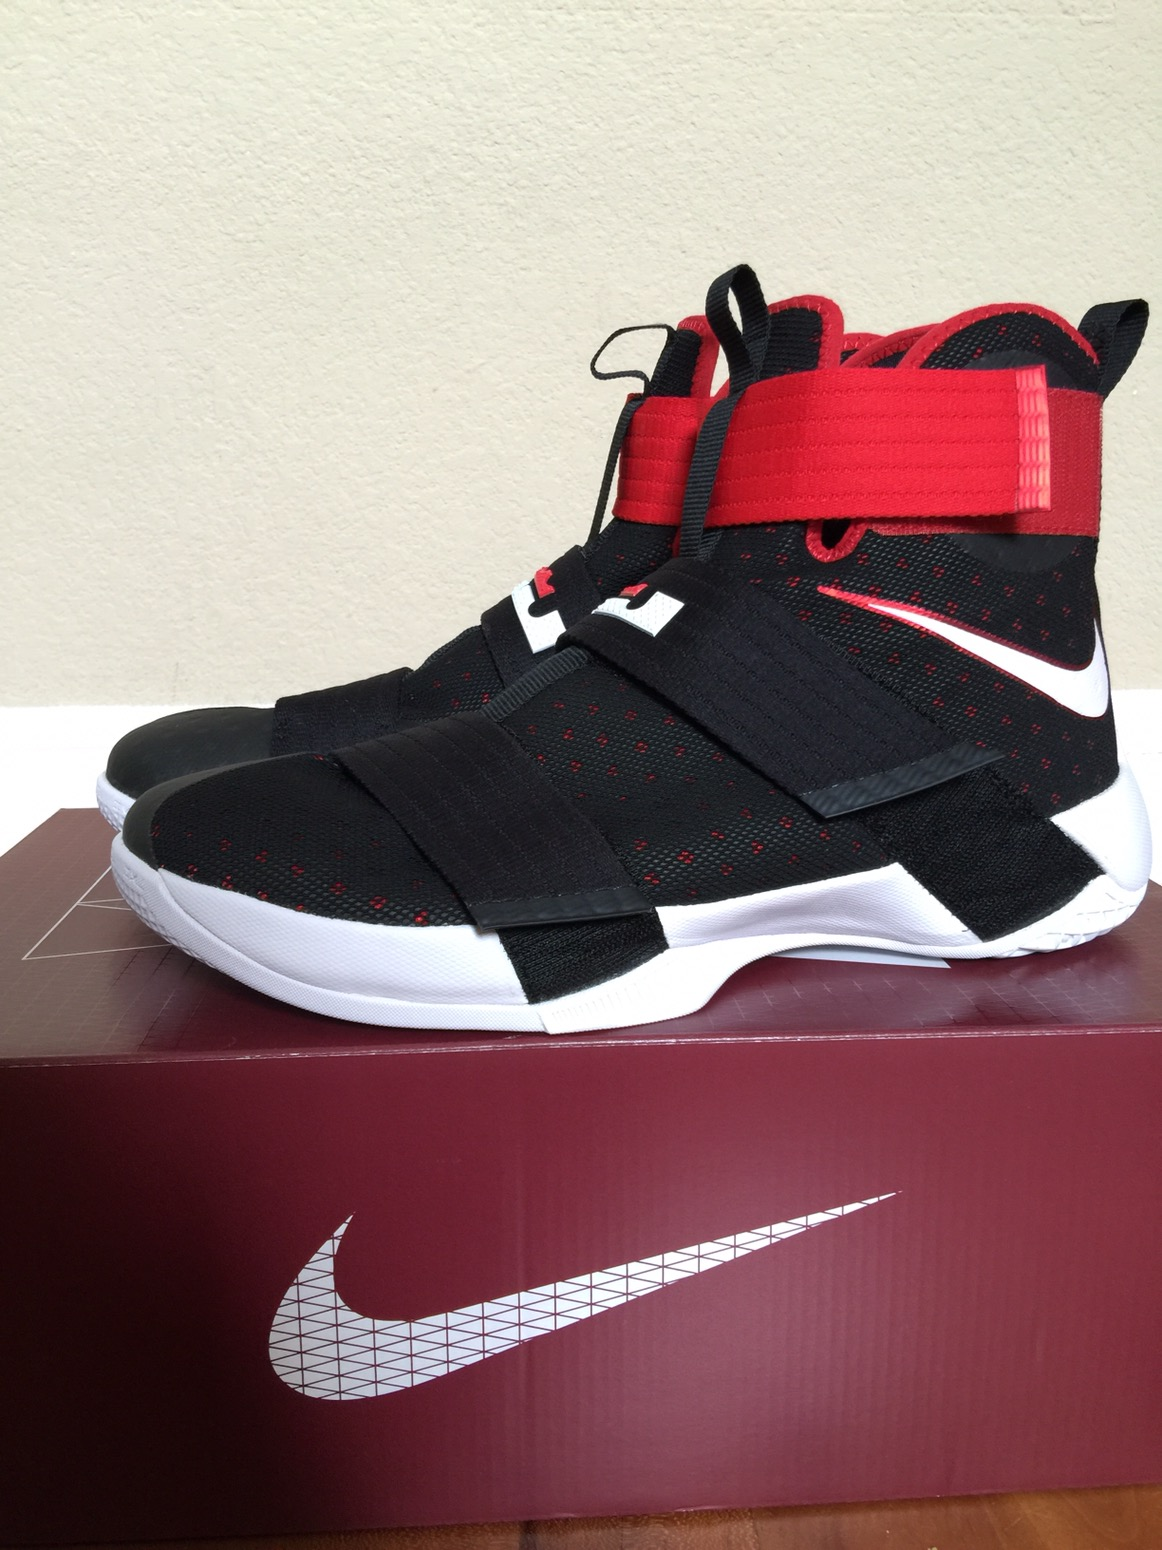 9f2e79a2afe Nike Lebron Soldier X 10 Performance Review